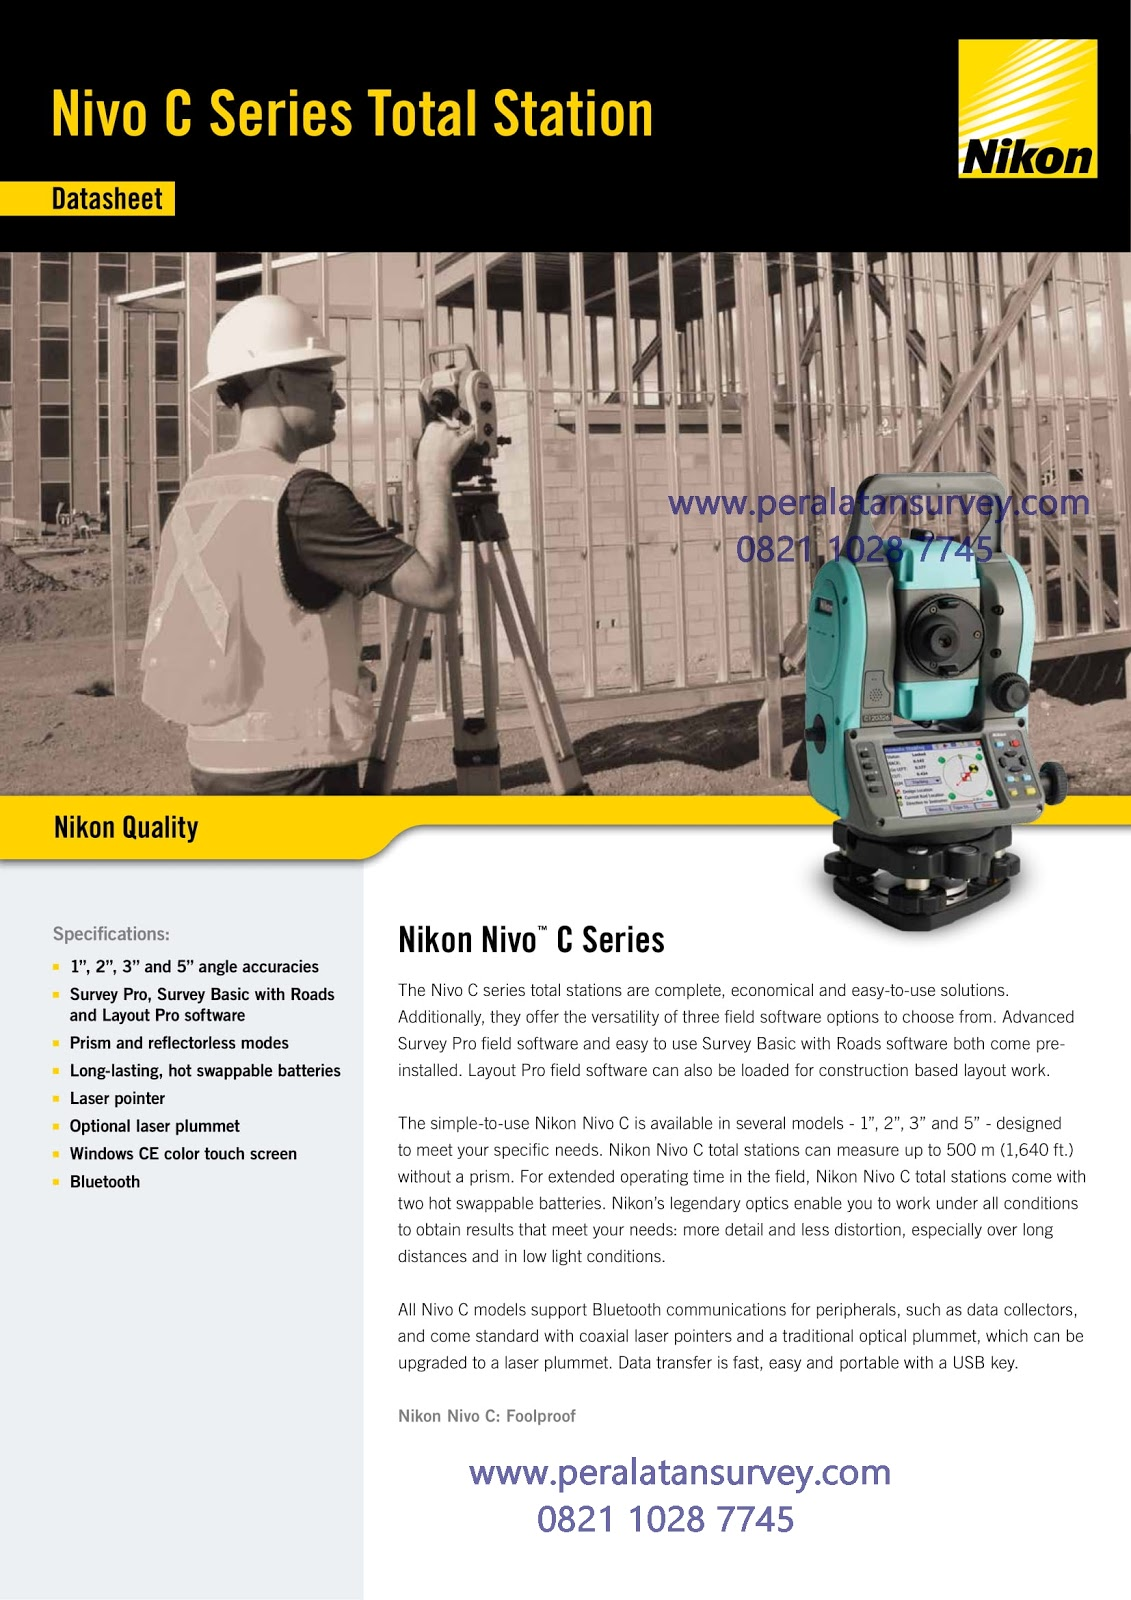 Brosur Total Station Nikon Nivo C Series